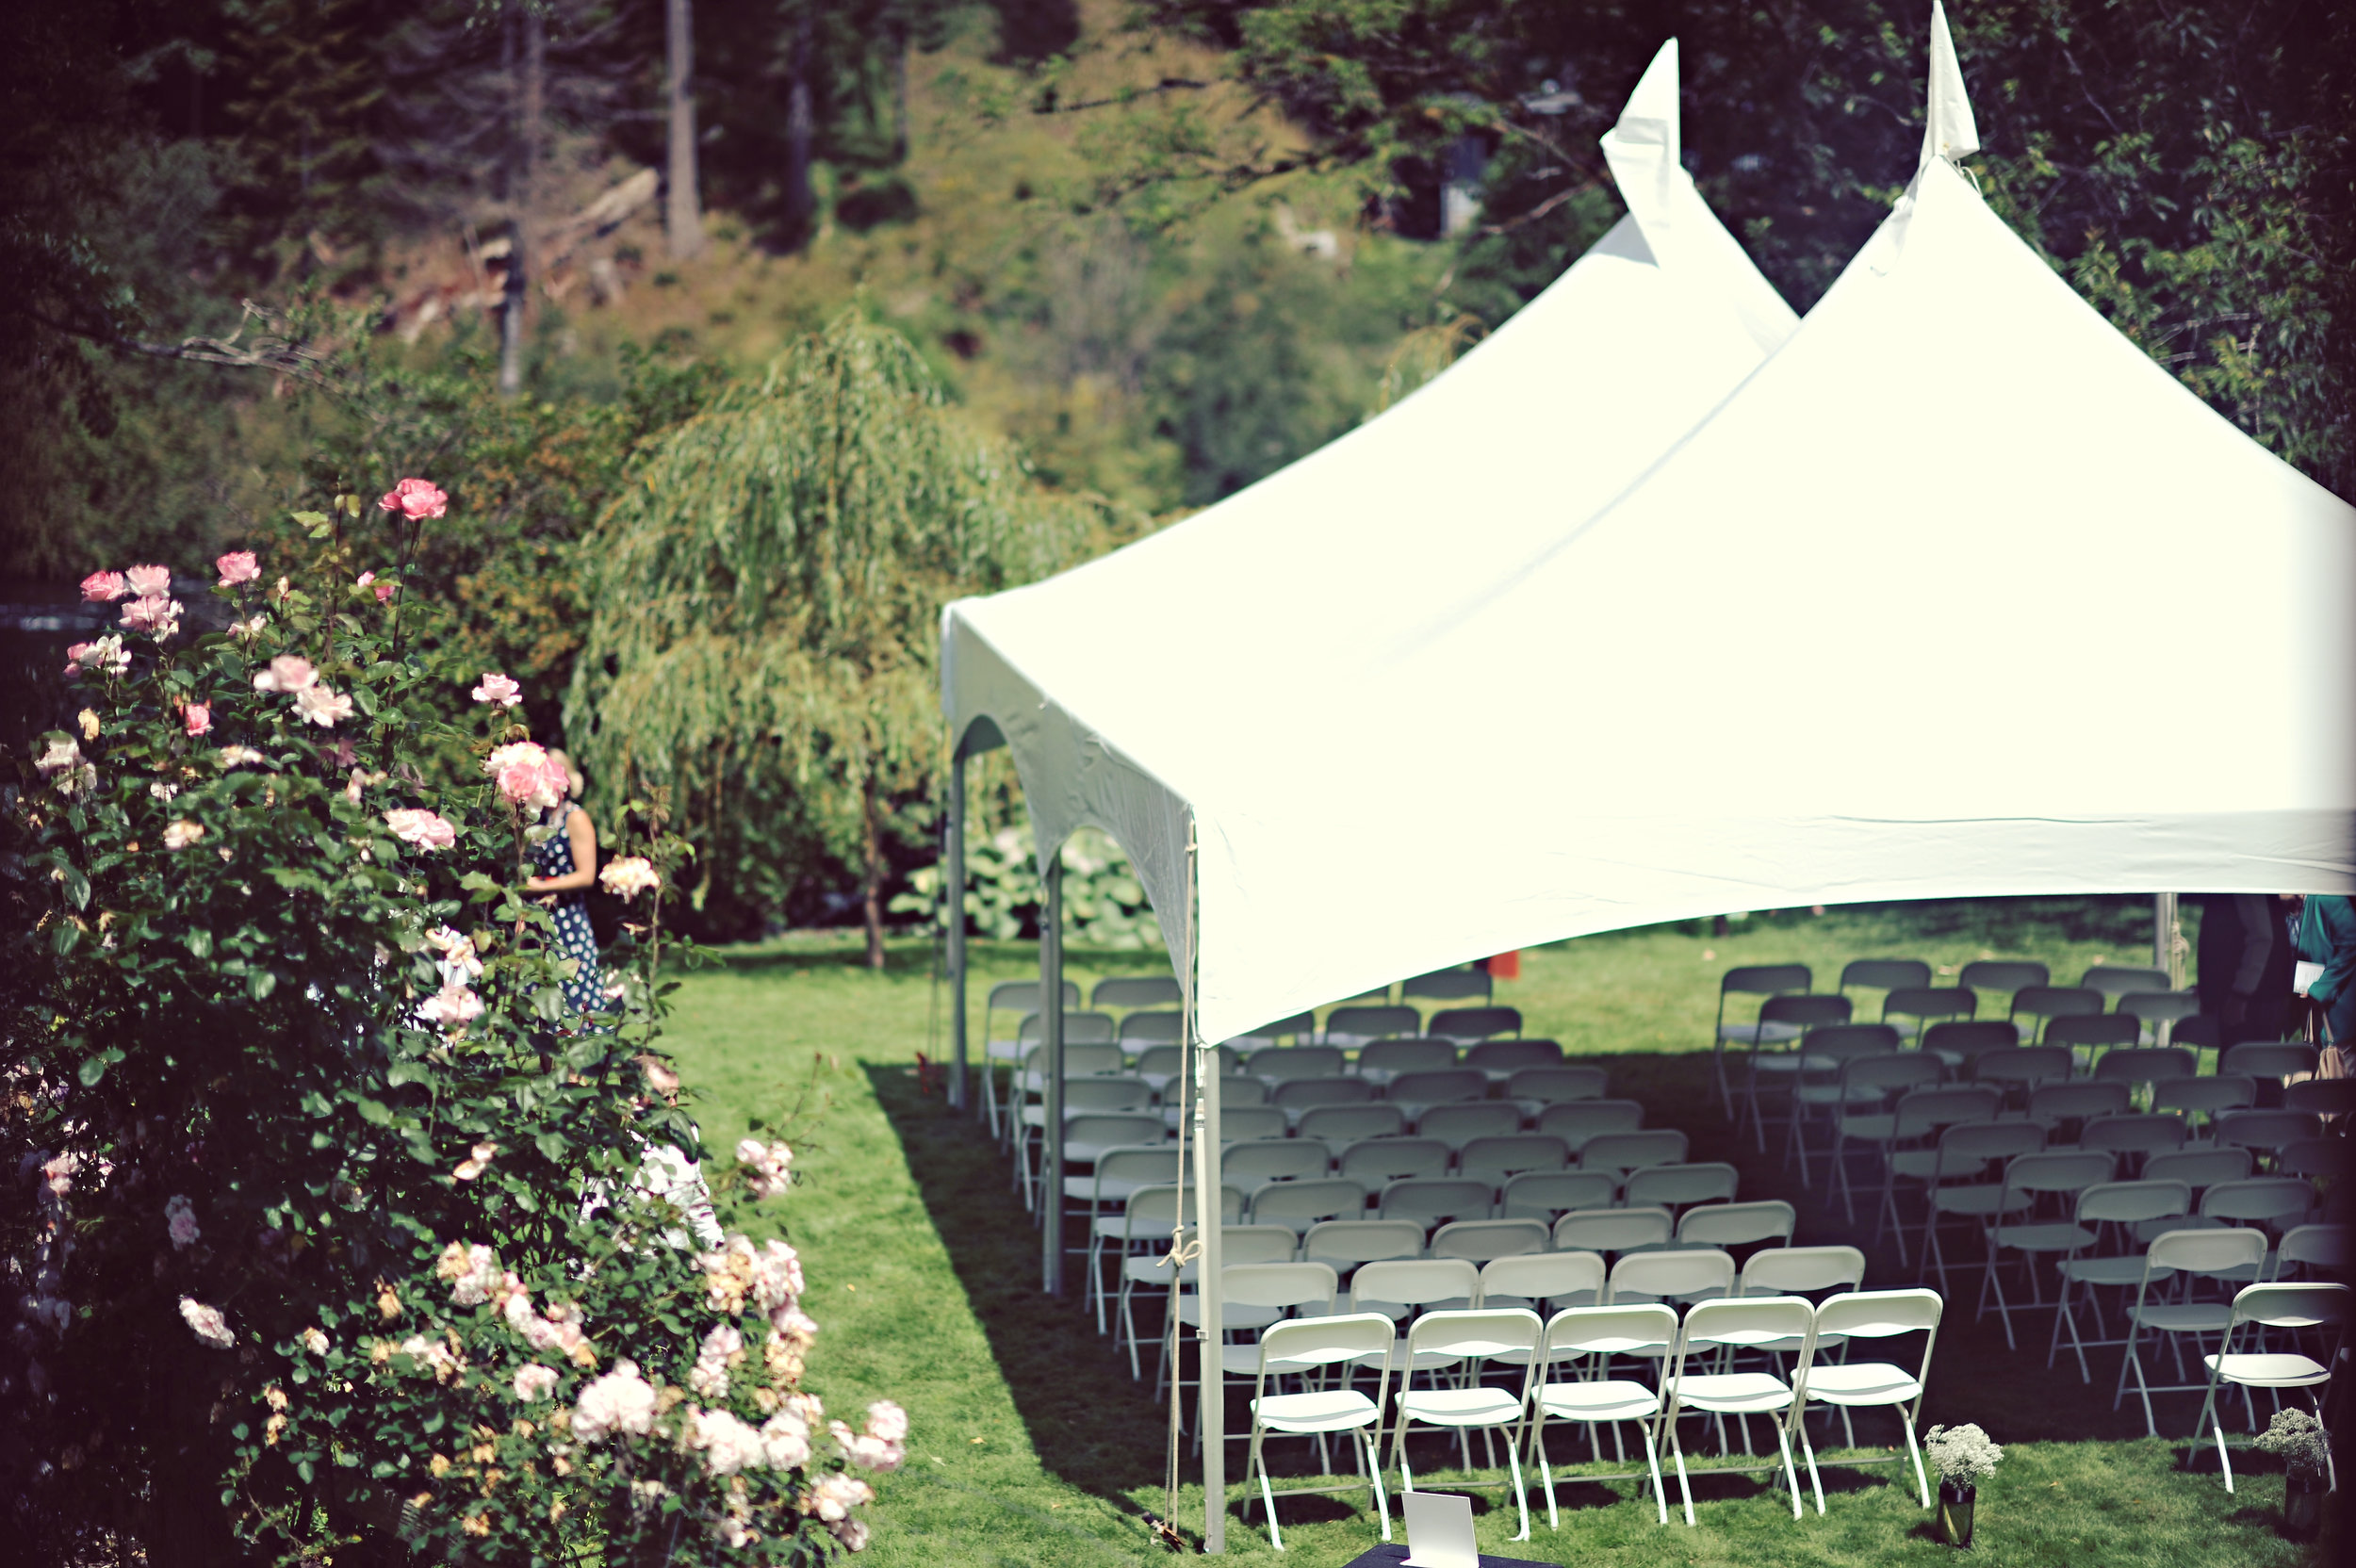 campbell river wedding venue